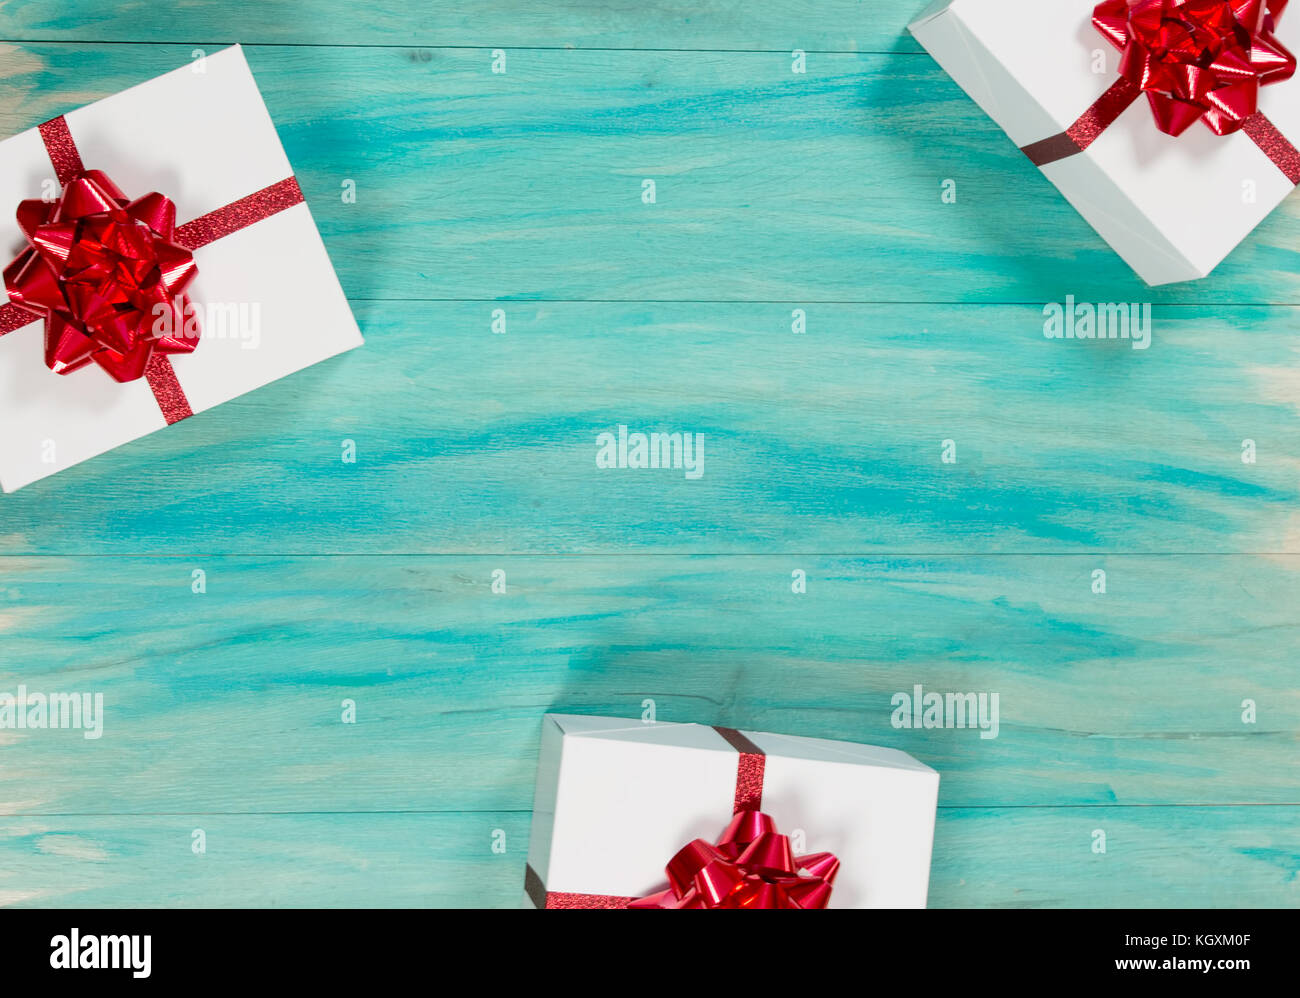 Christmas presents with red bows  on a distressed teal wood background - Stock Image